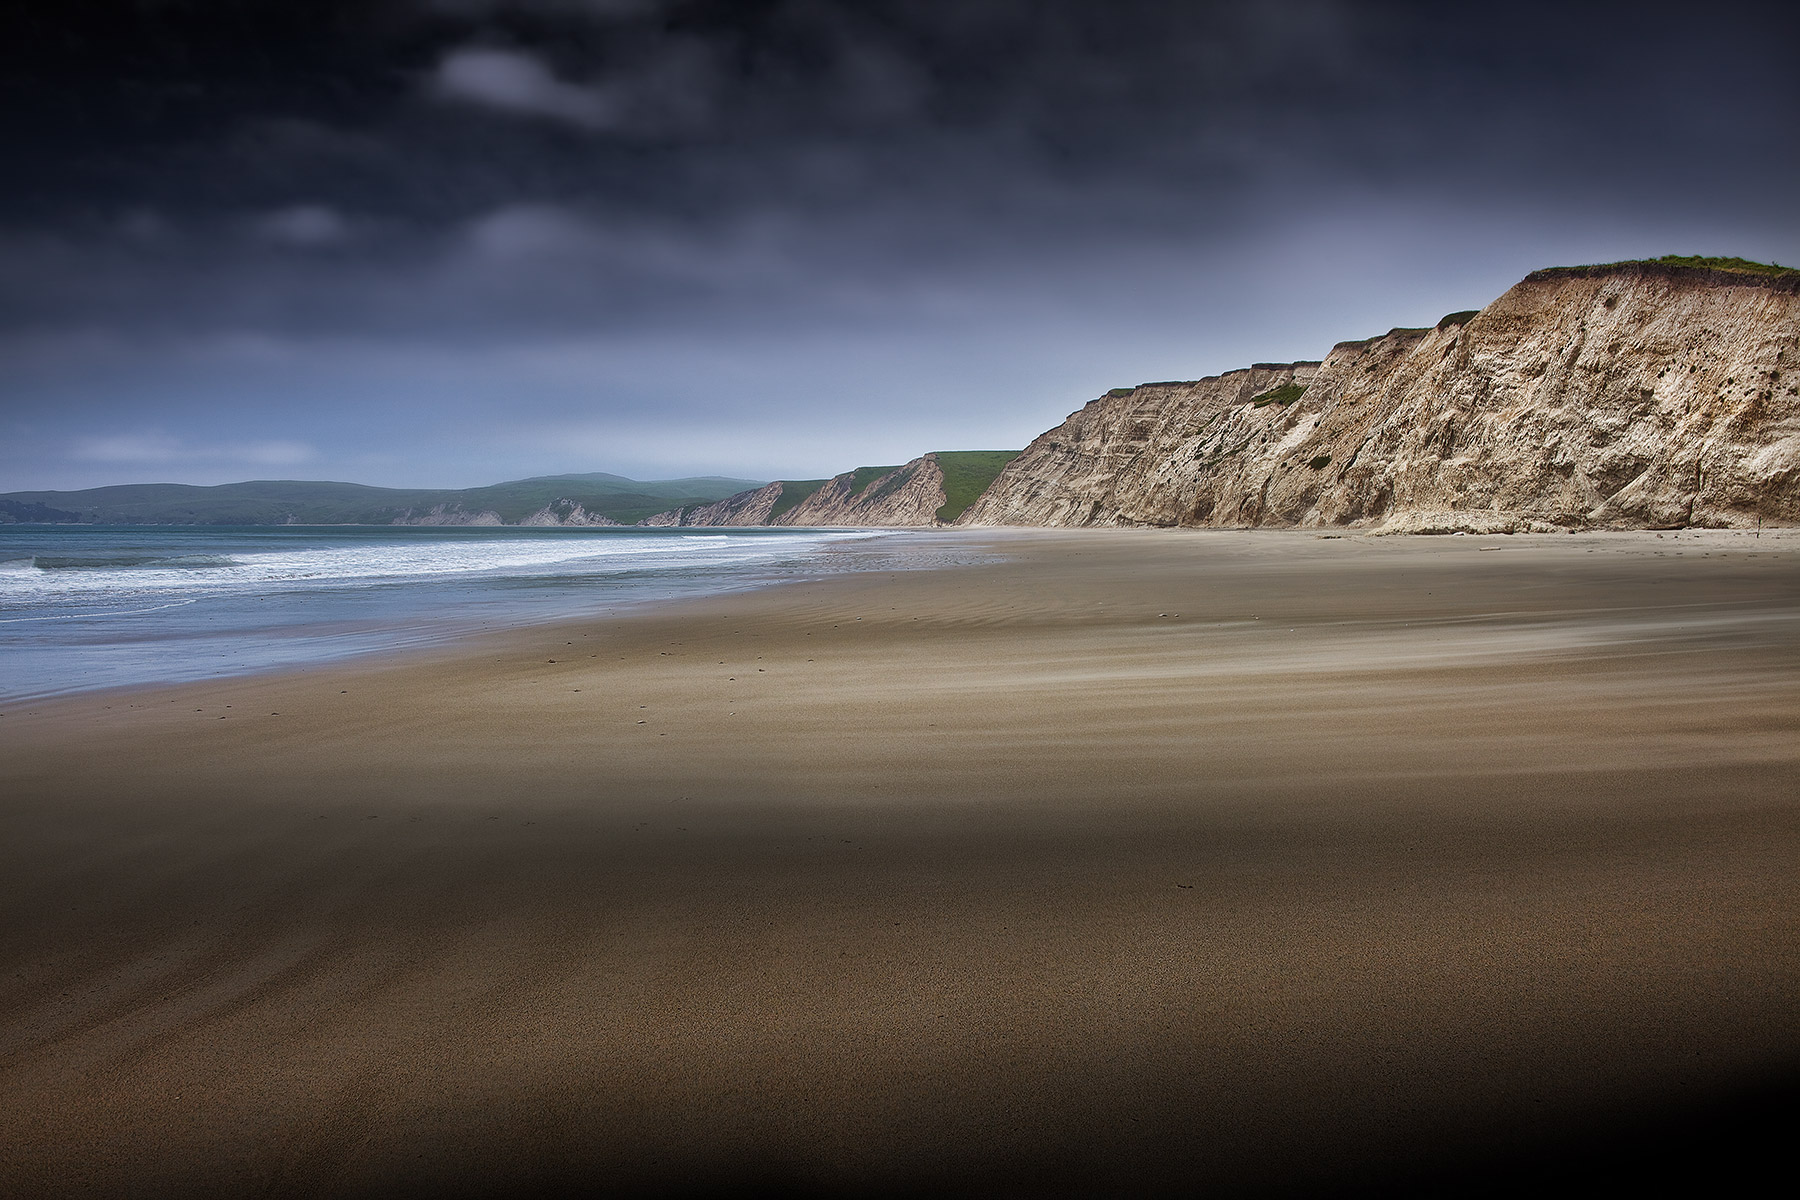 Beach and cliffs California Coast | Dovis Bird Agency Reps